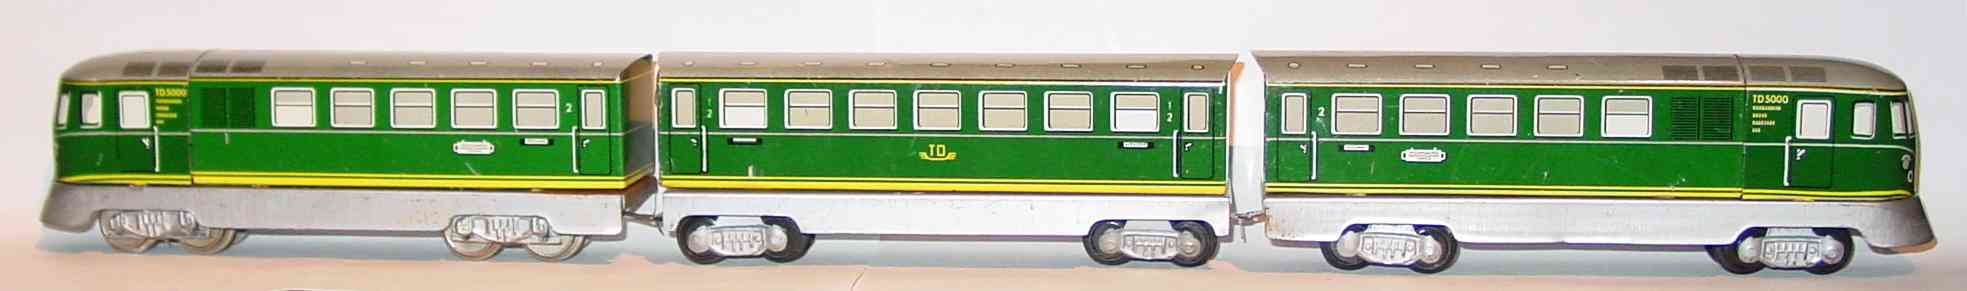 distler johann 502 railway toy engine railcar td 5000 three-parts green gauge h0